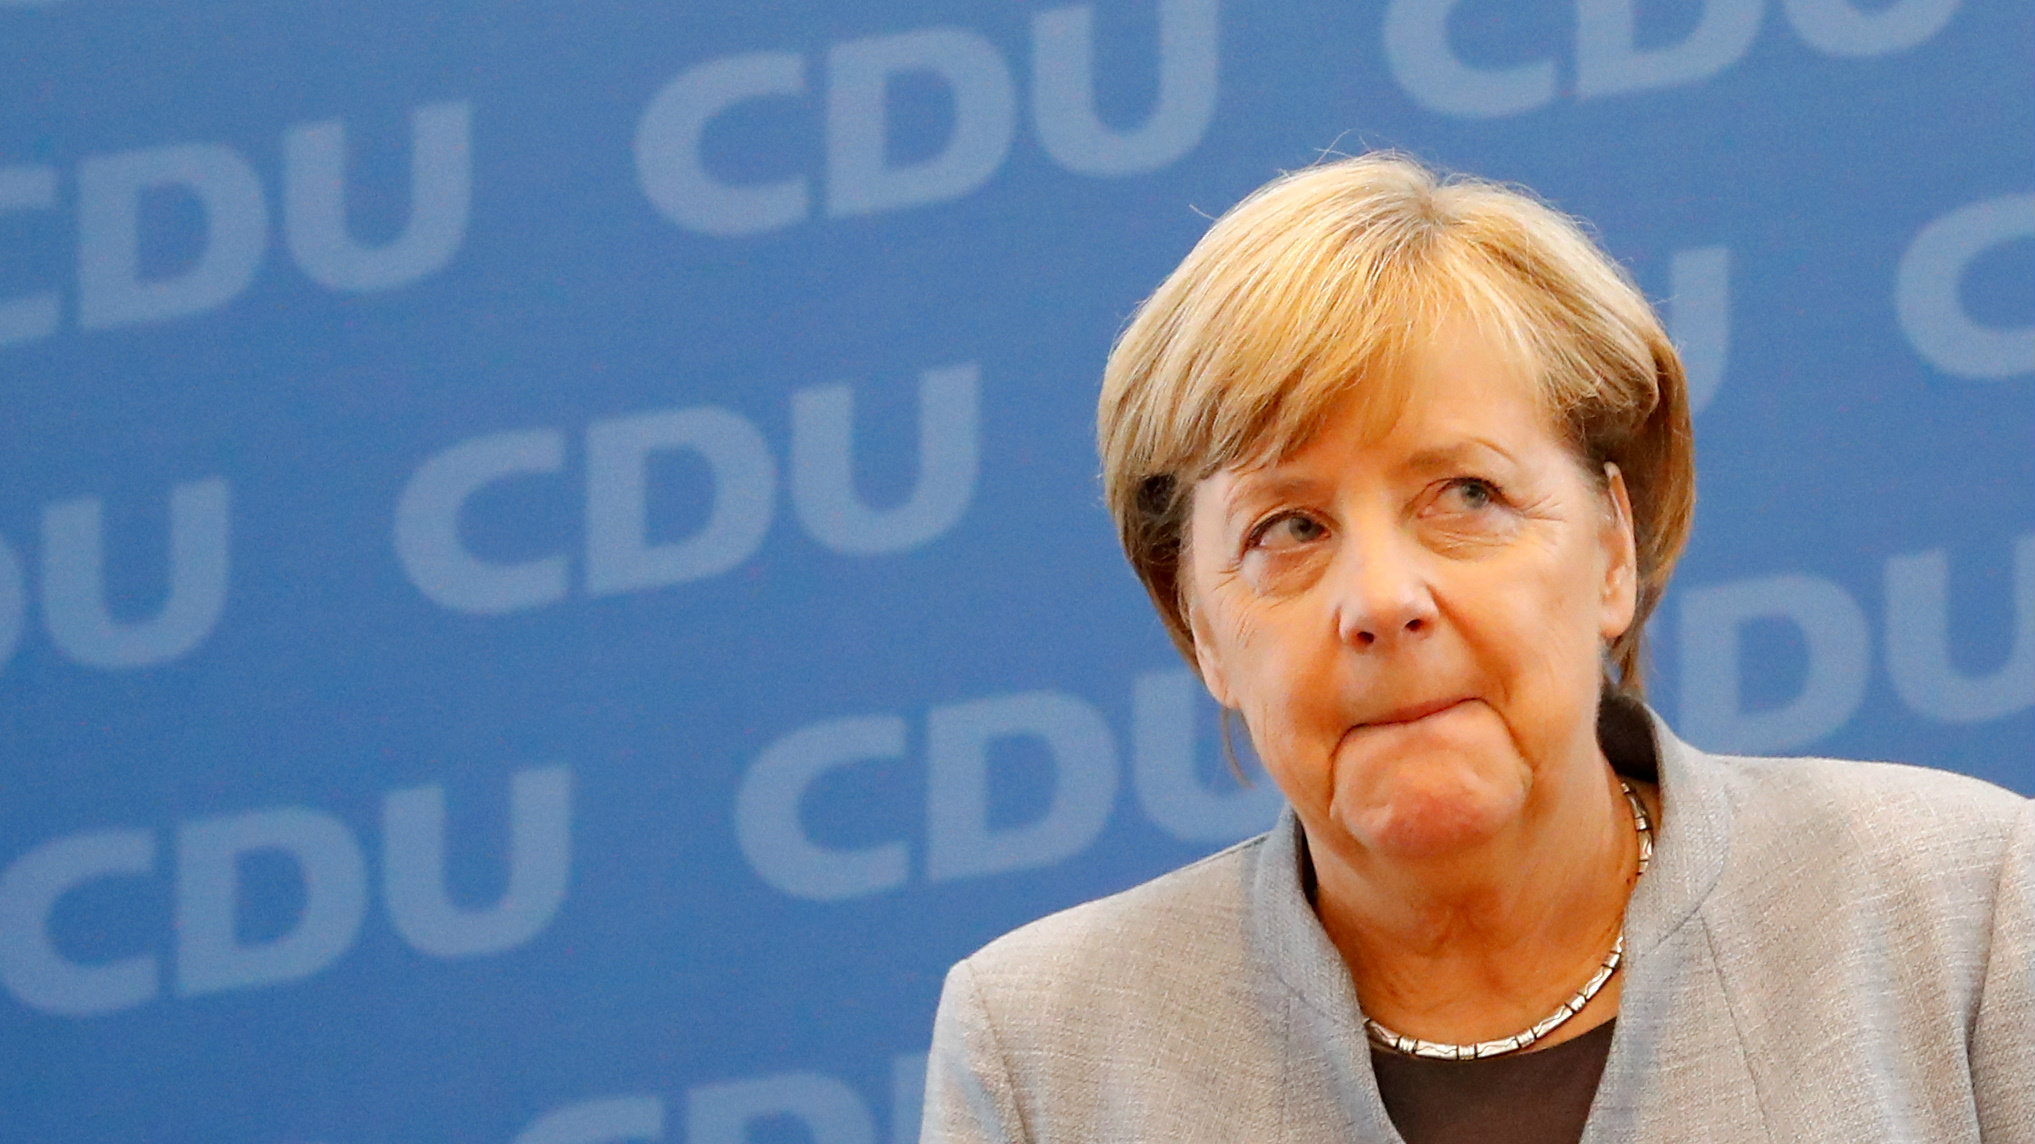 German Chancellor Angela Merkel after 2017 election